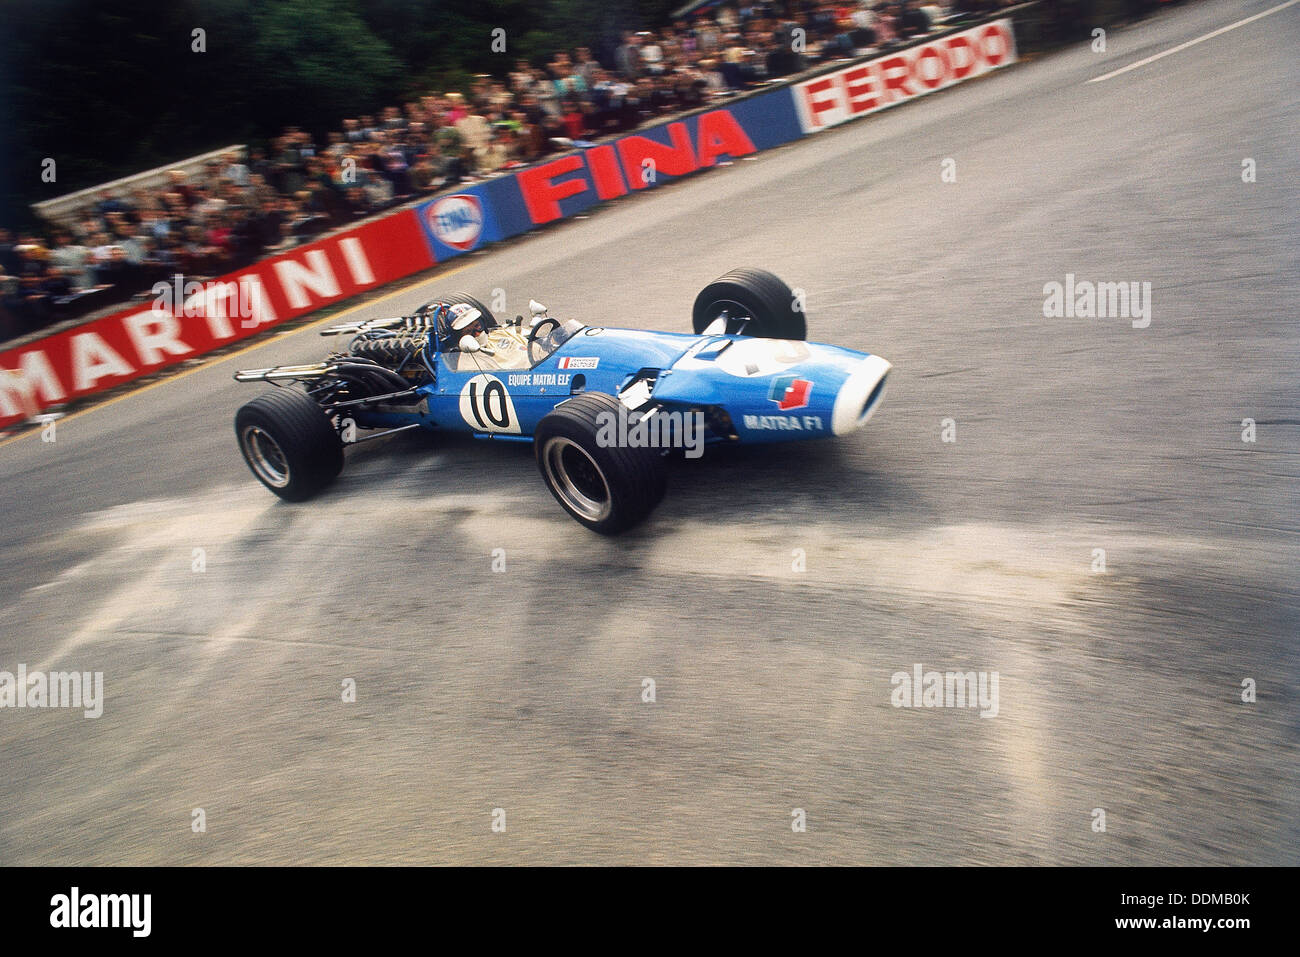 jean pierre beltoise au volant d 39 une matra grand prix de belgique spa francorchamps 1968. Black Bedroom Furniture Sets. Home Design Ideas